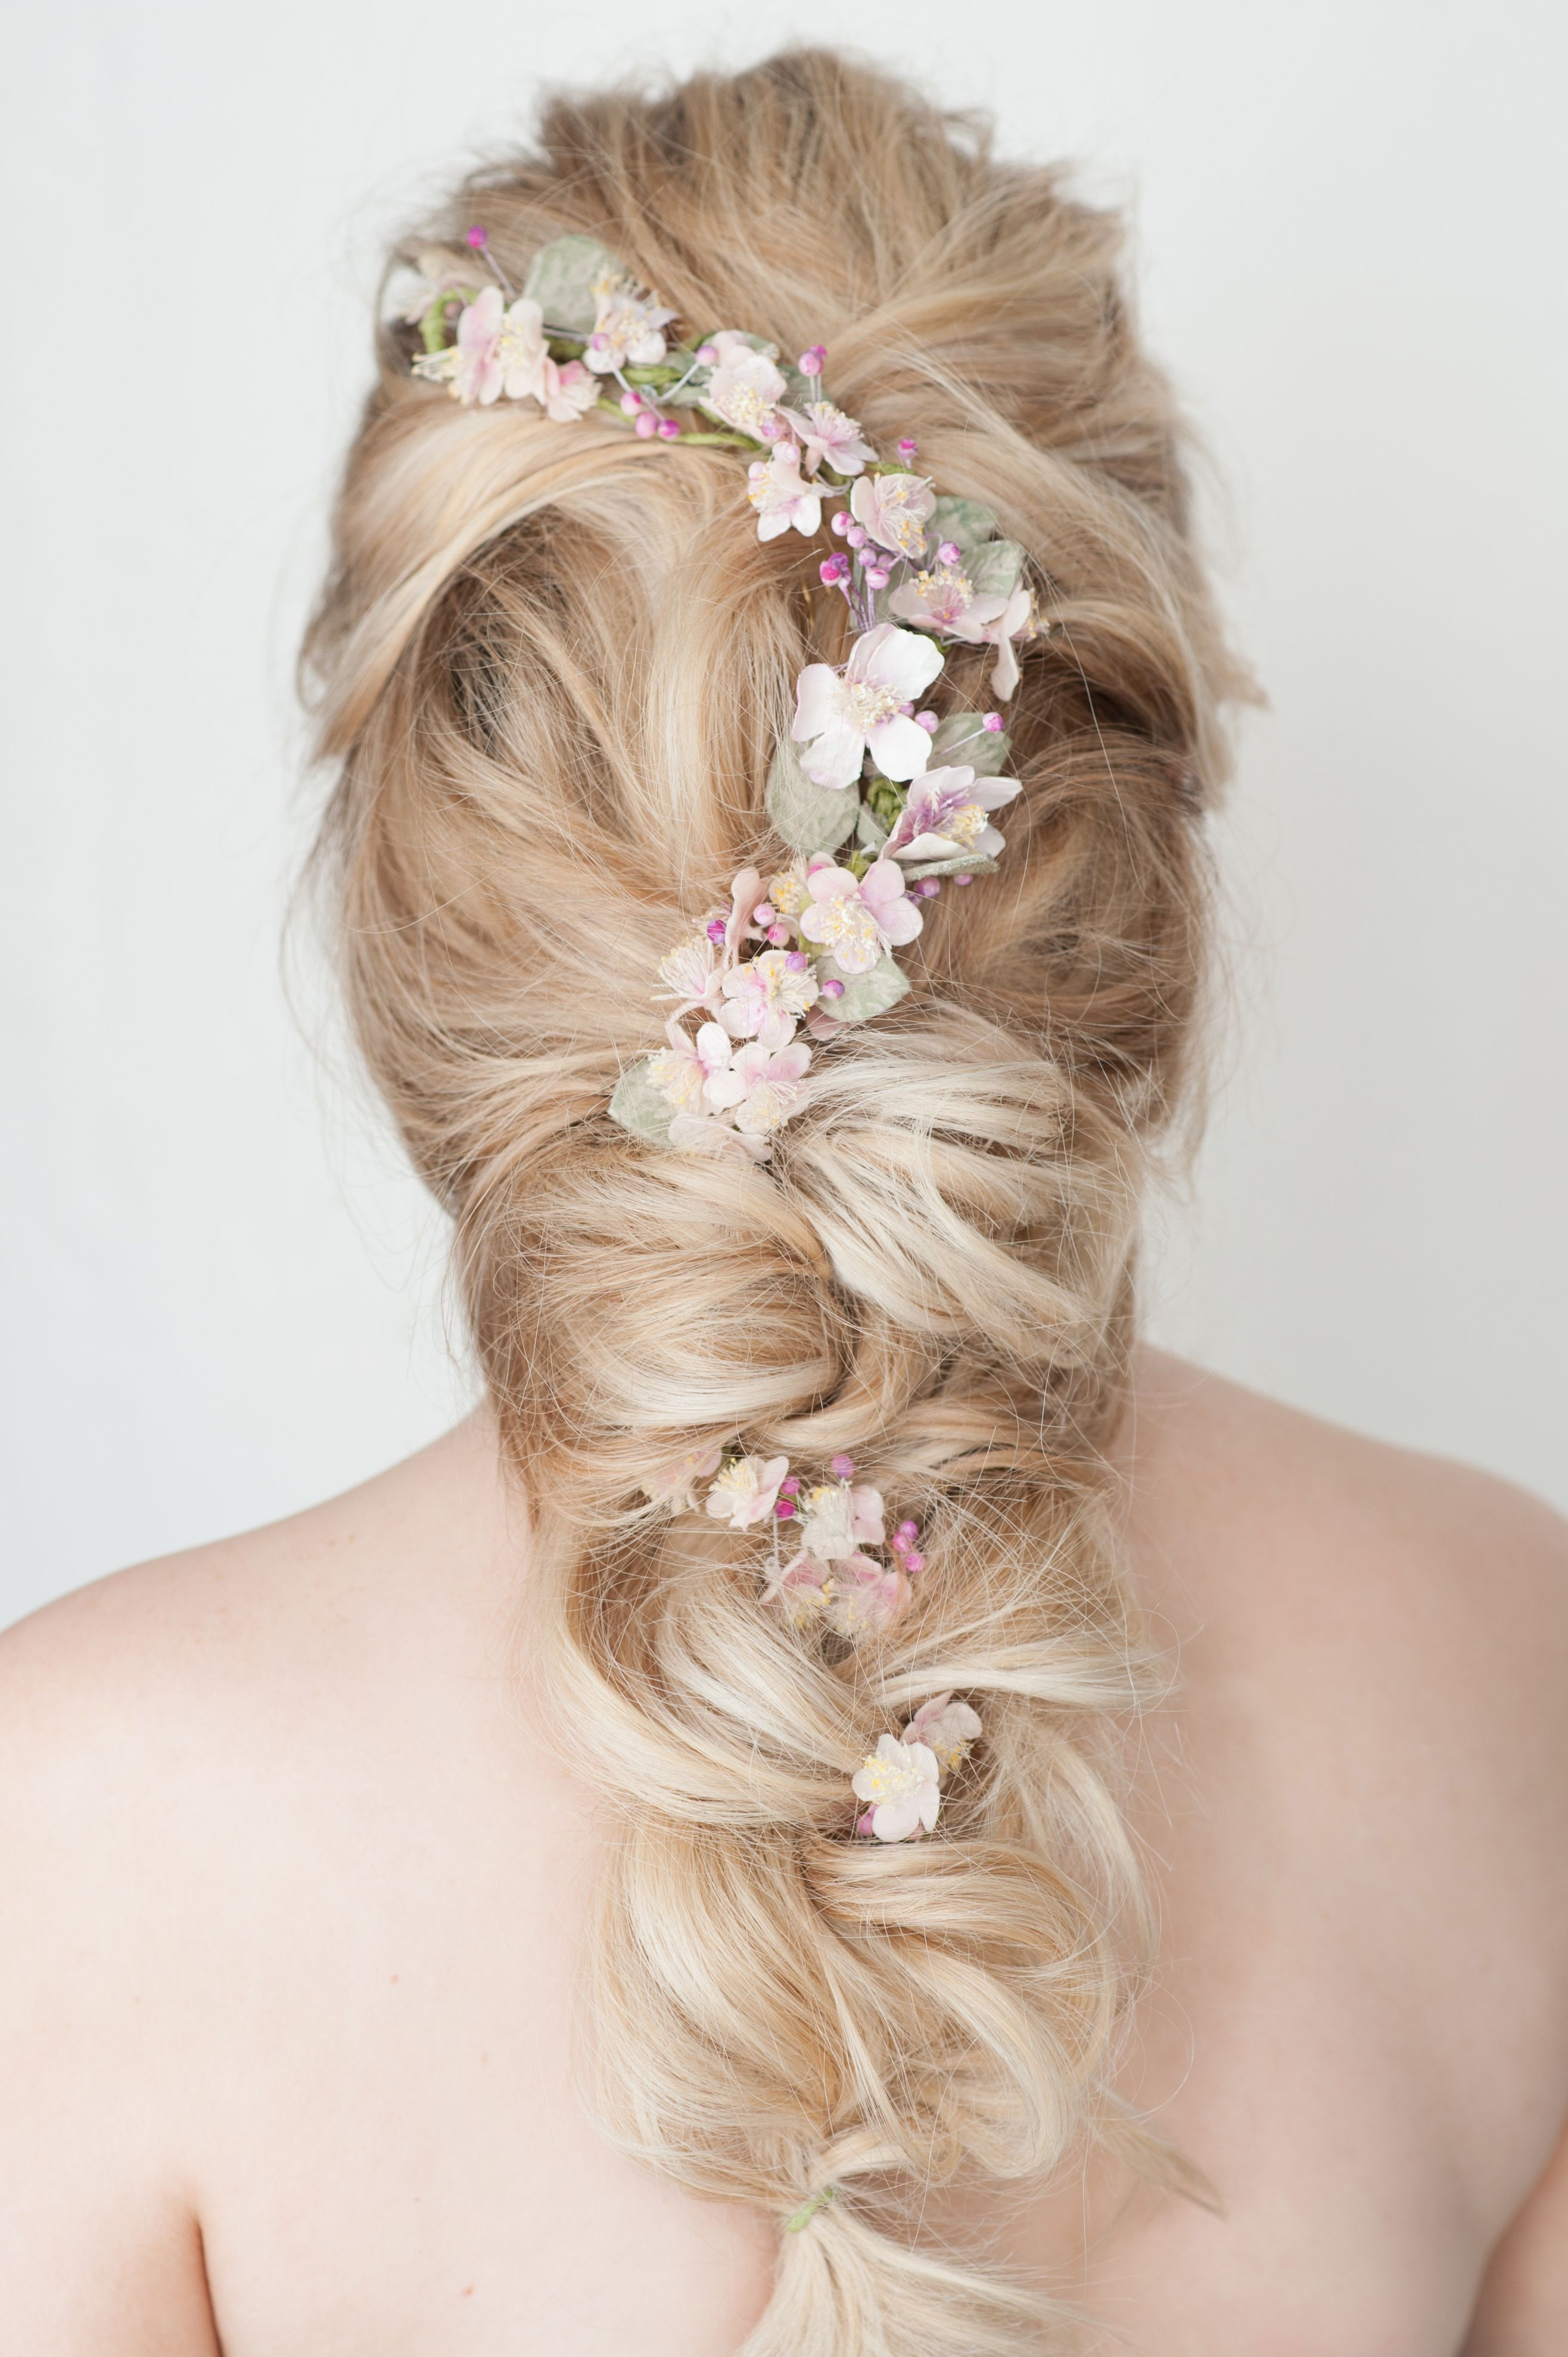 Fashionable Undone Low Bun Bridal Hairstyles With Floral Headband In Bridal Hair. Loose Undone Plait With Flowers. Www.facebook (Gallery 3 of 20)